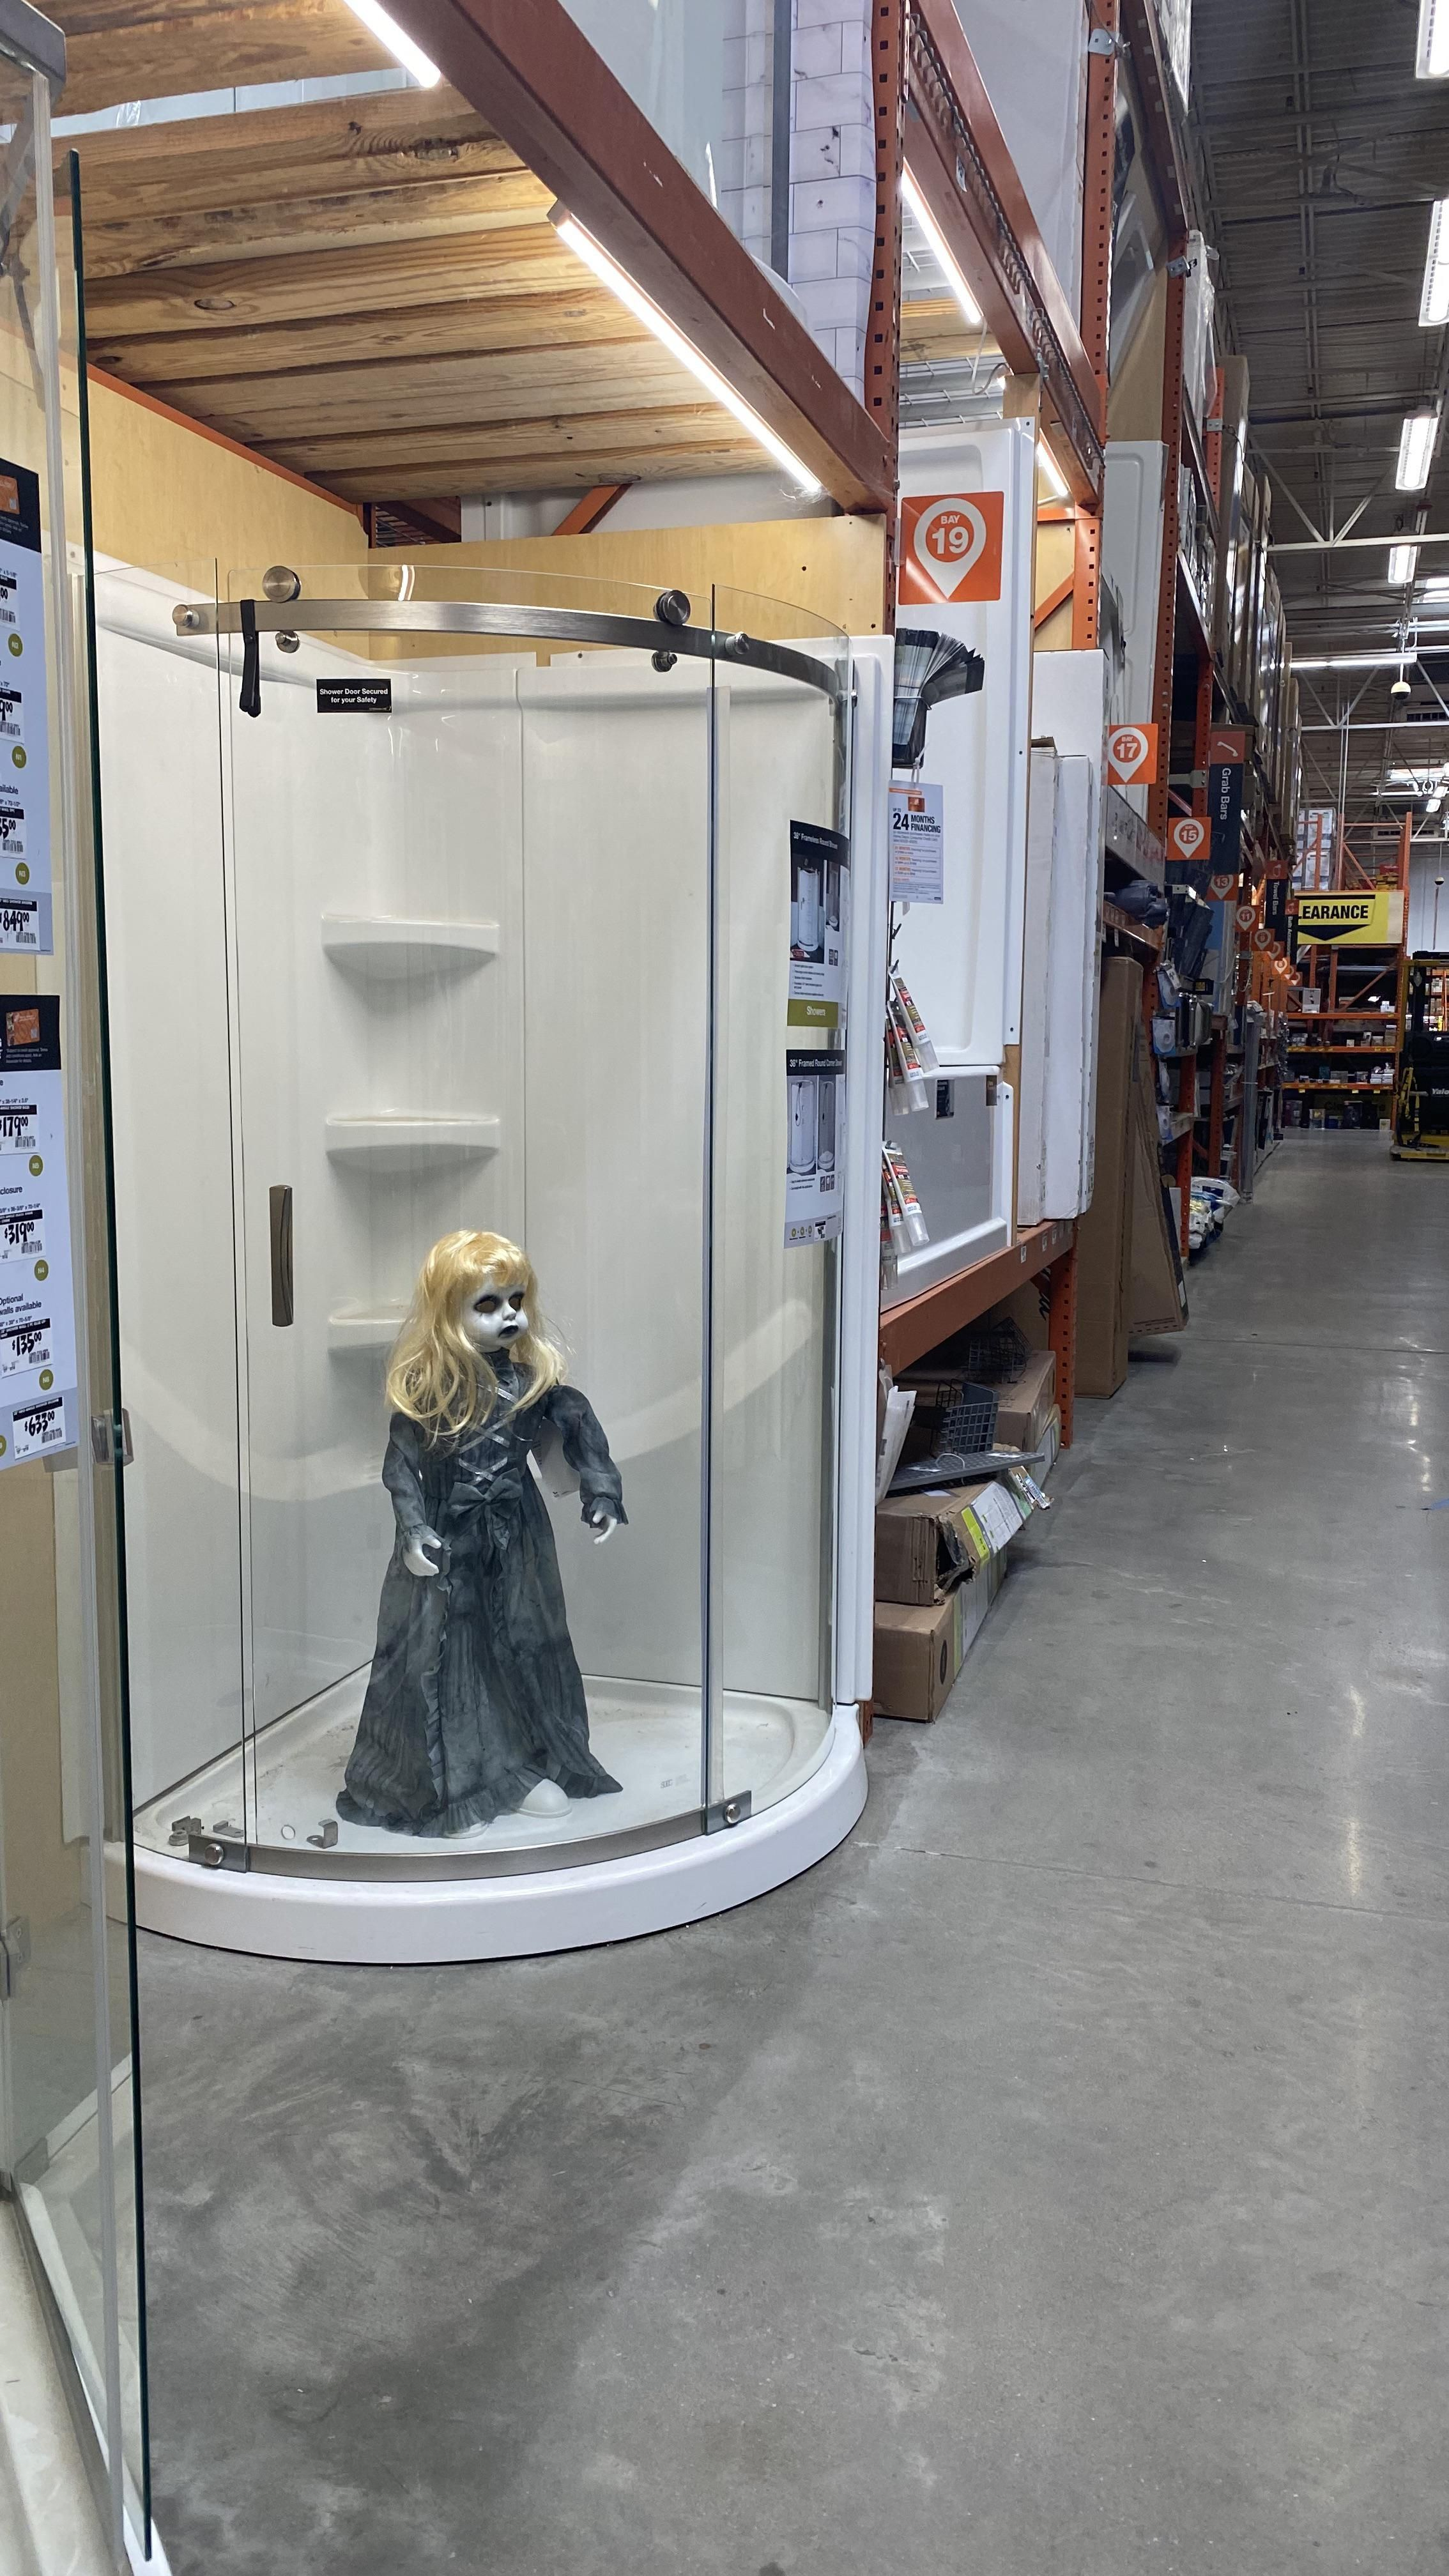 Relocating Home Depot Halloween decorations.